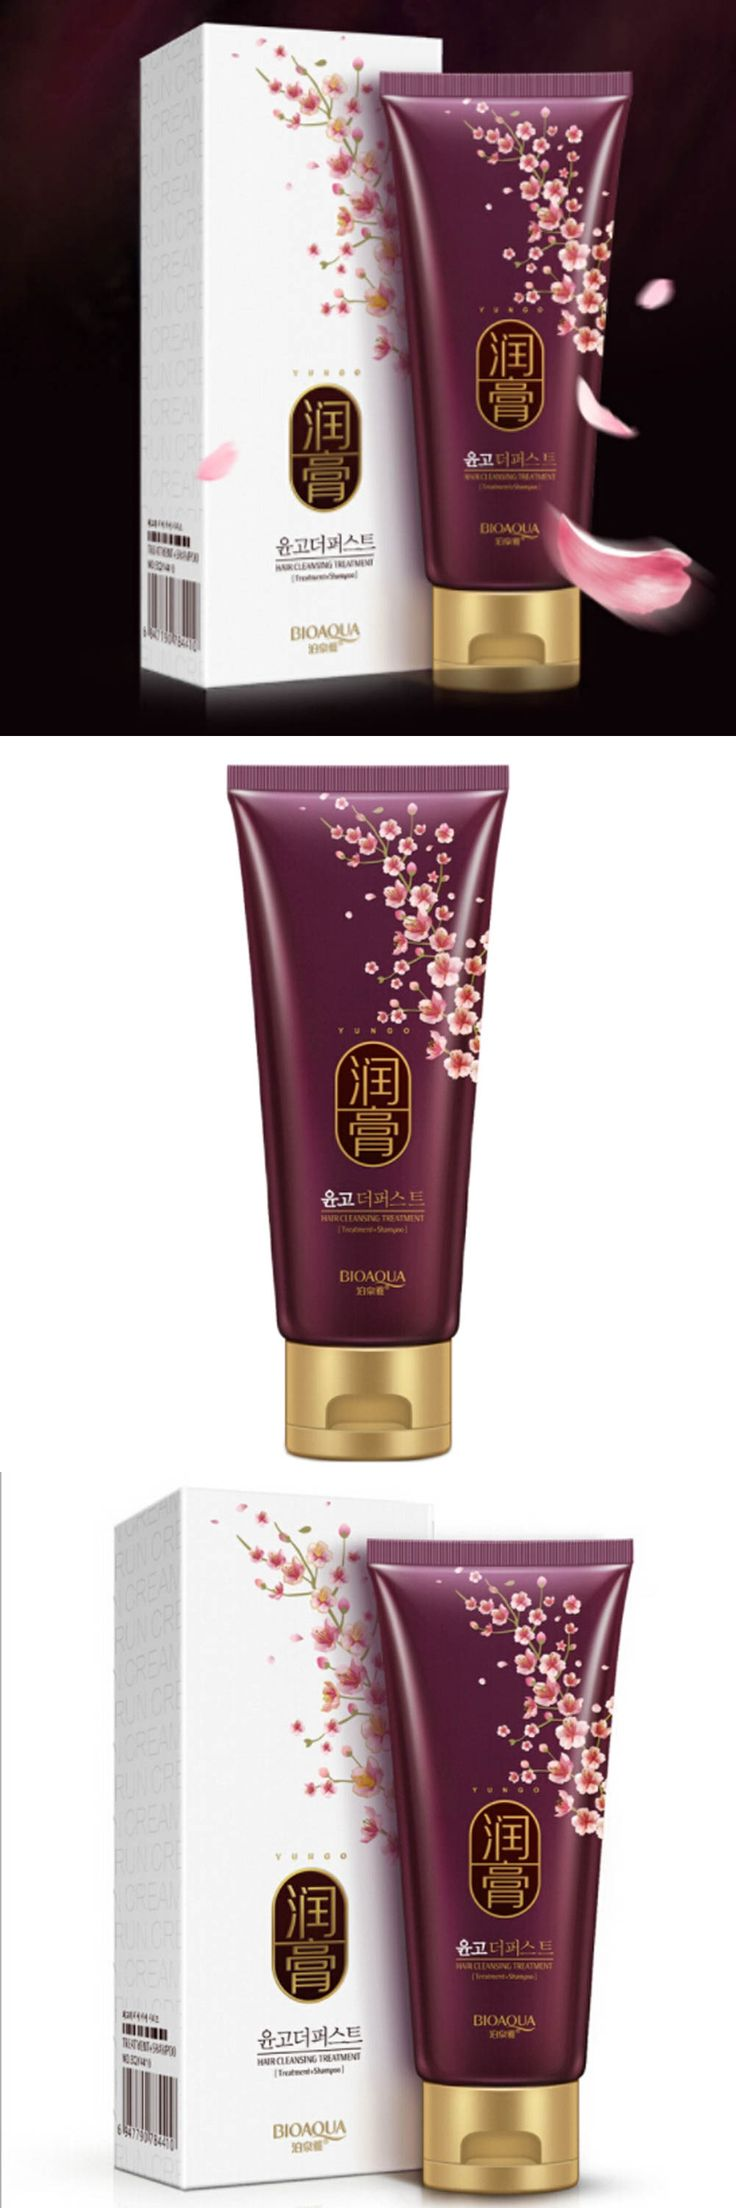 2017  2 in 1 protect shampoo ultra-mild cleanser hair shampoo professional Prevent fading and eliminate color washout beauty